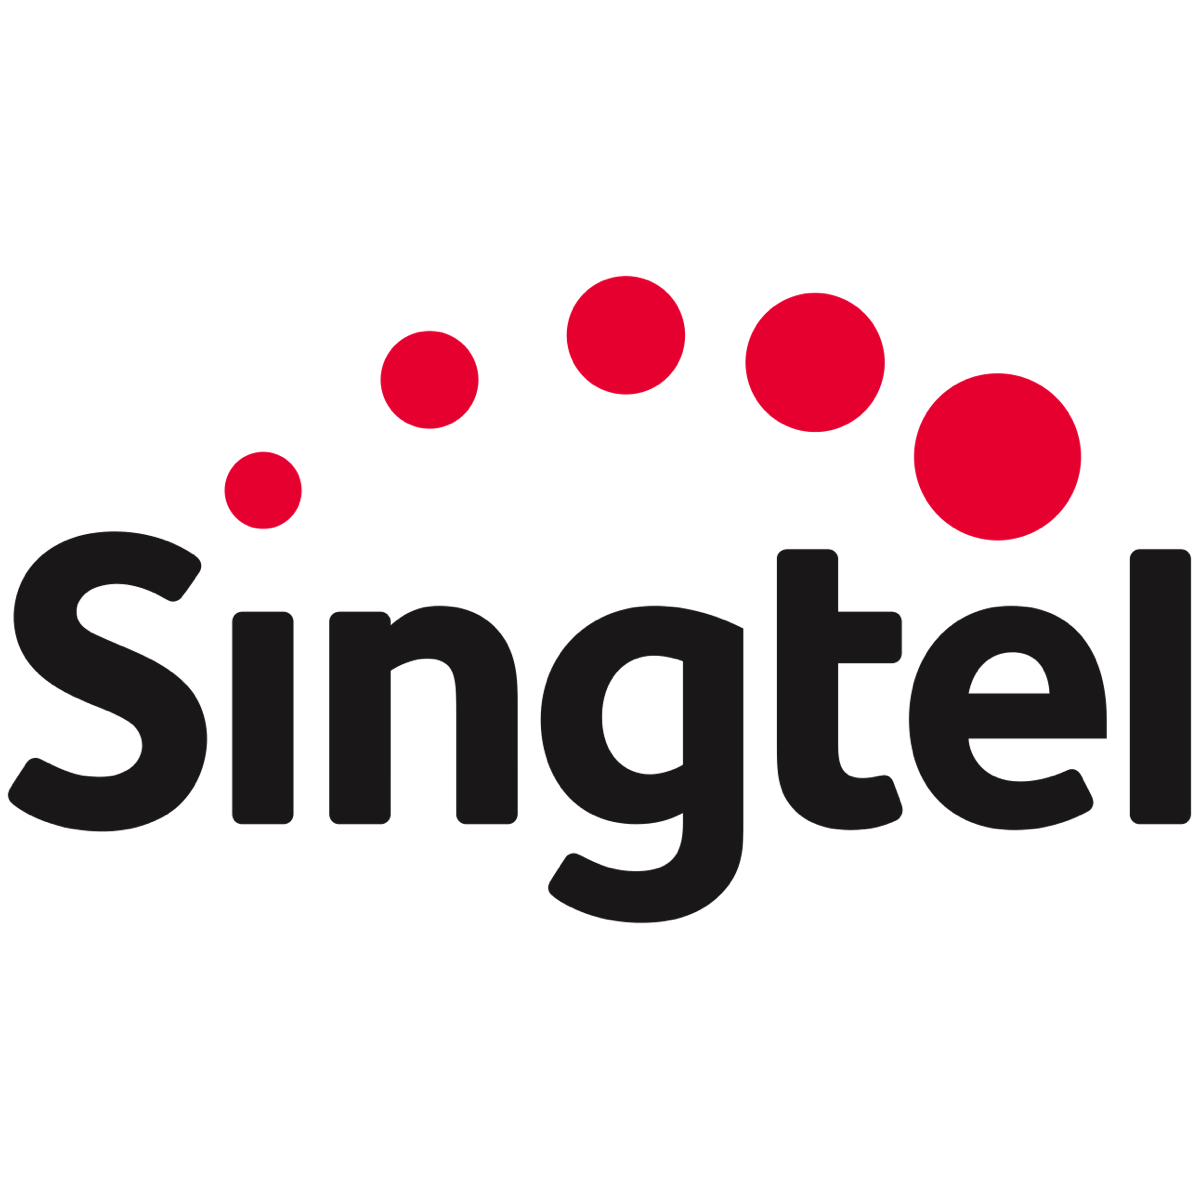 SingTel - CIMB Research 2018-03-14: Yields And Safety In FY18F; Growth From FY19F